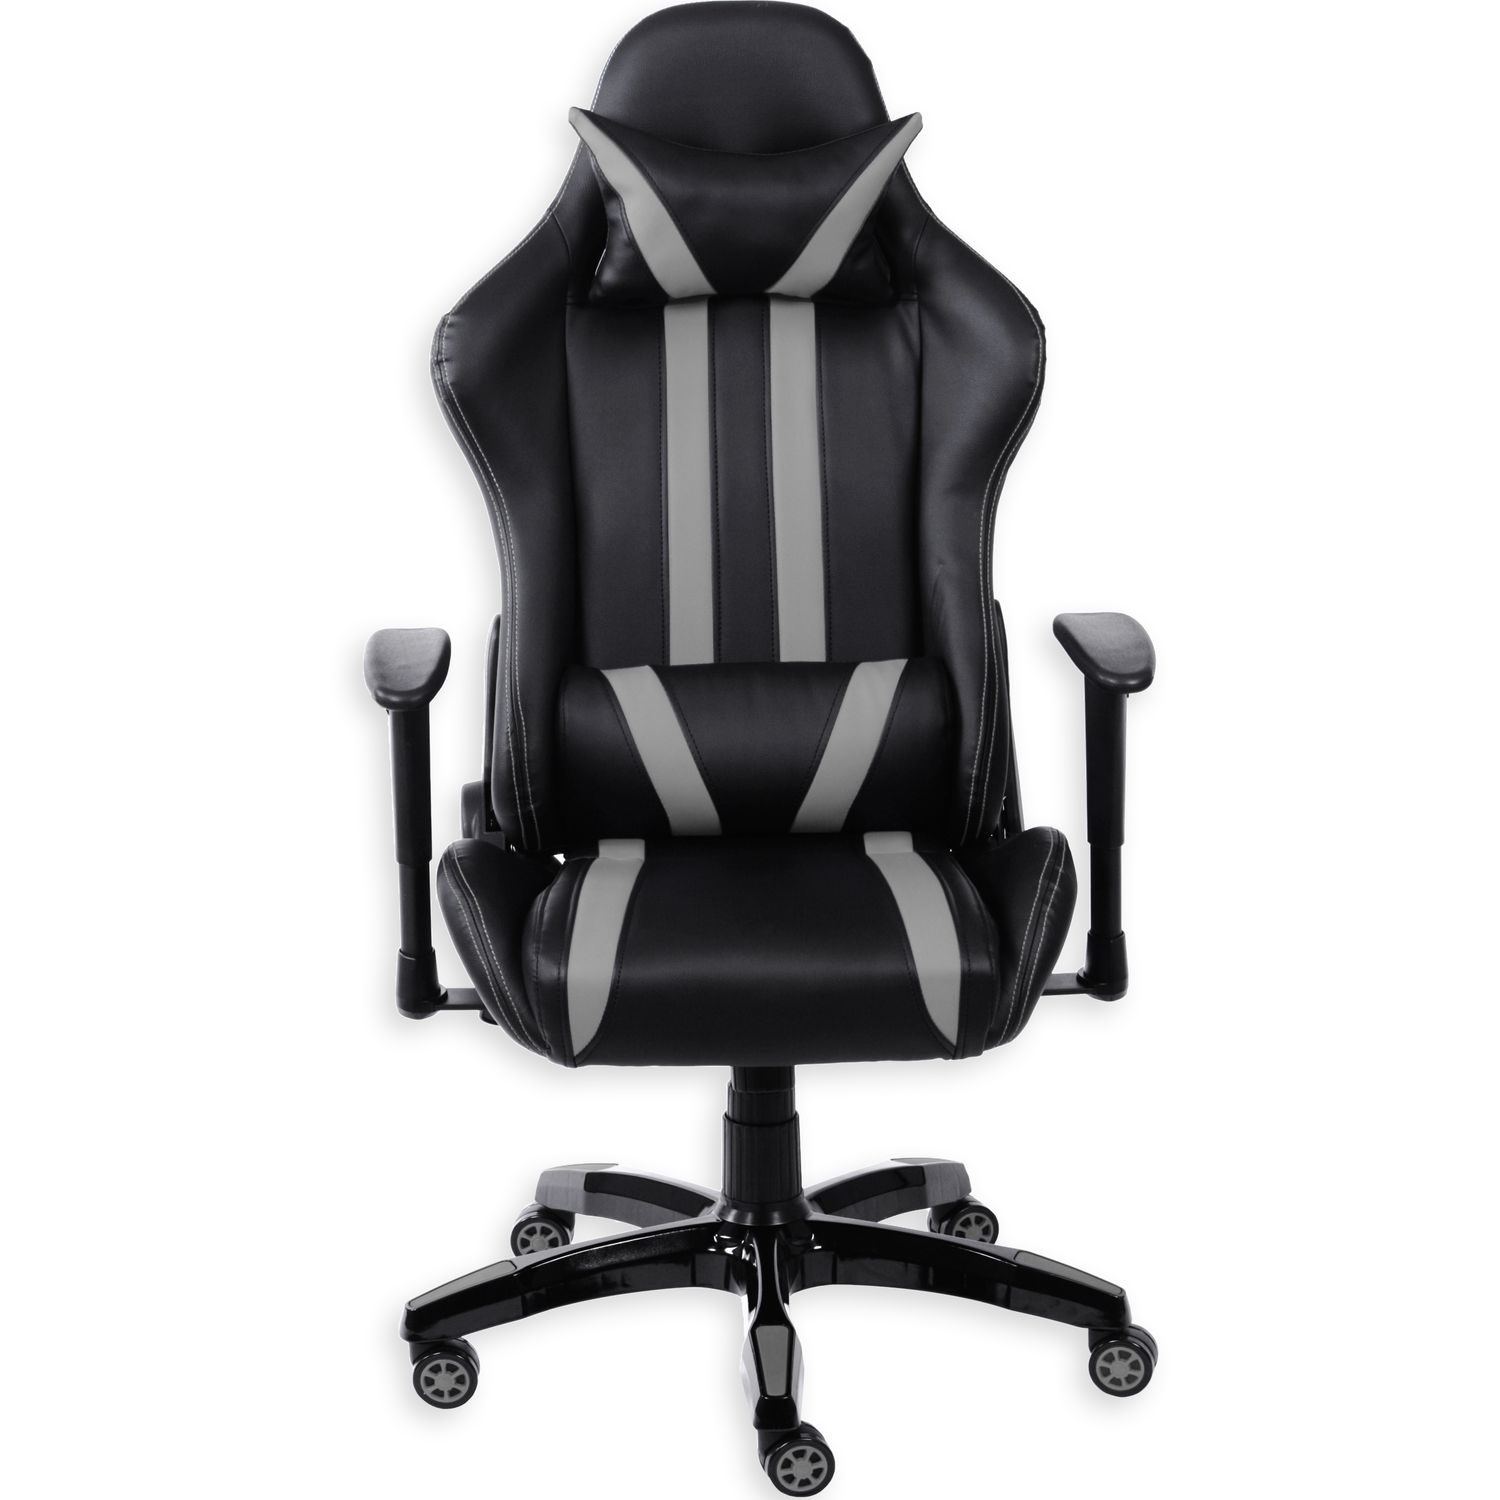 Kesser Premium Desk Chair Swivel Chair✓ Continuously height